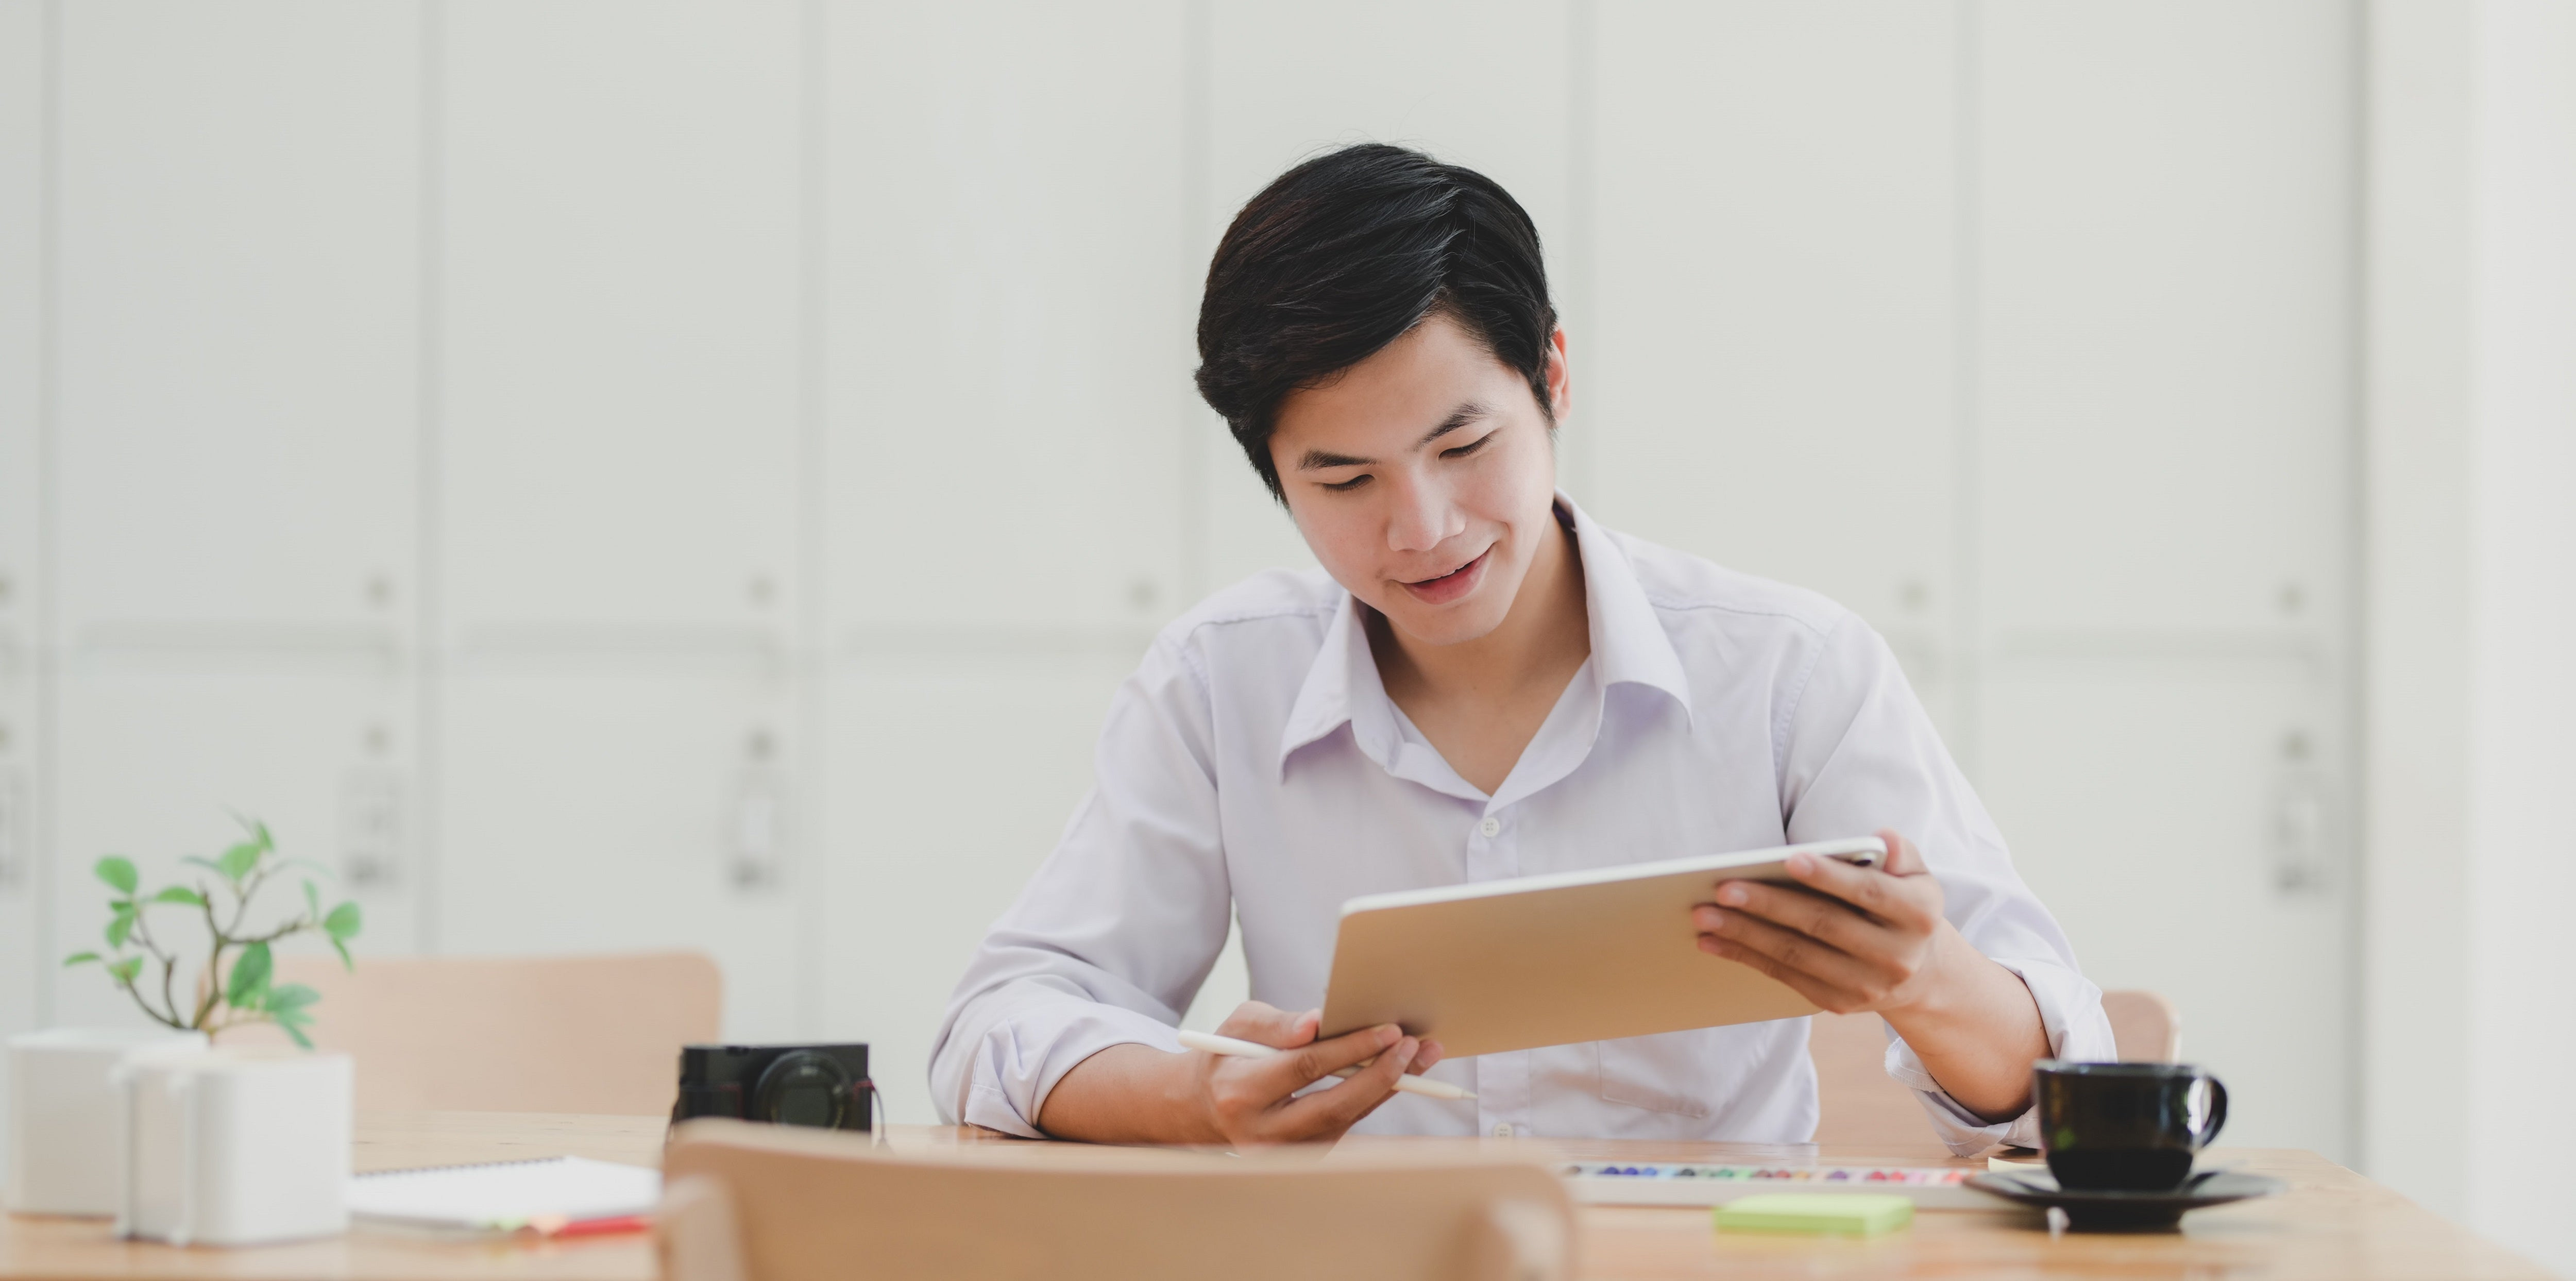 Young man studying tablet at desk.